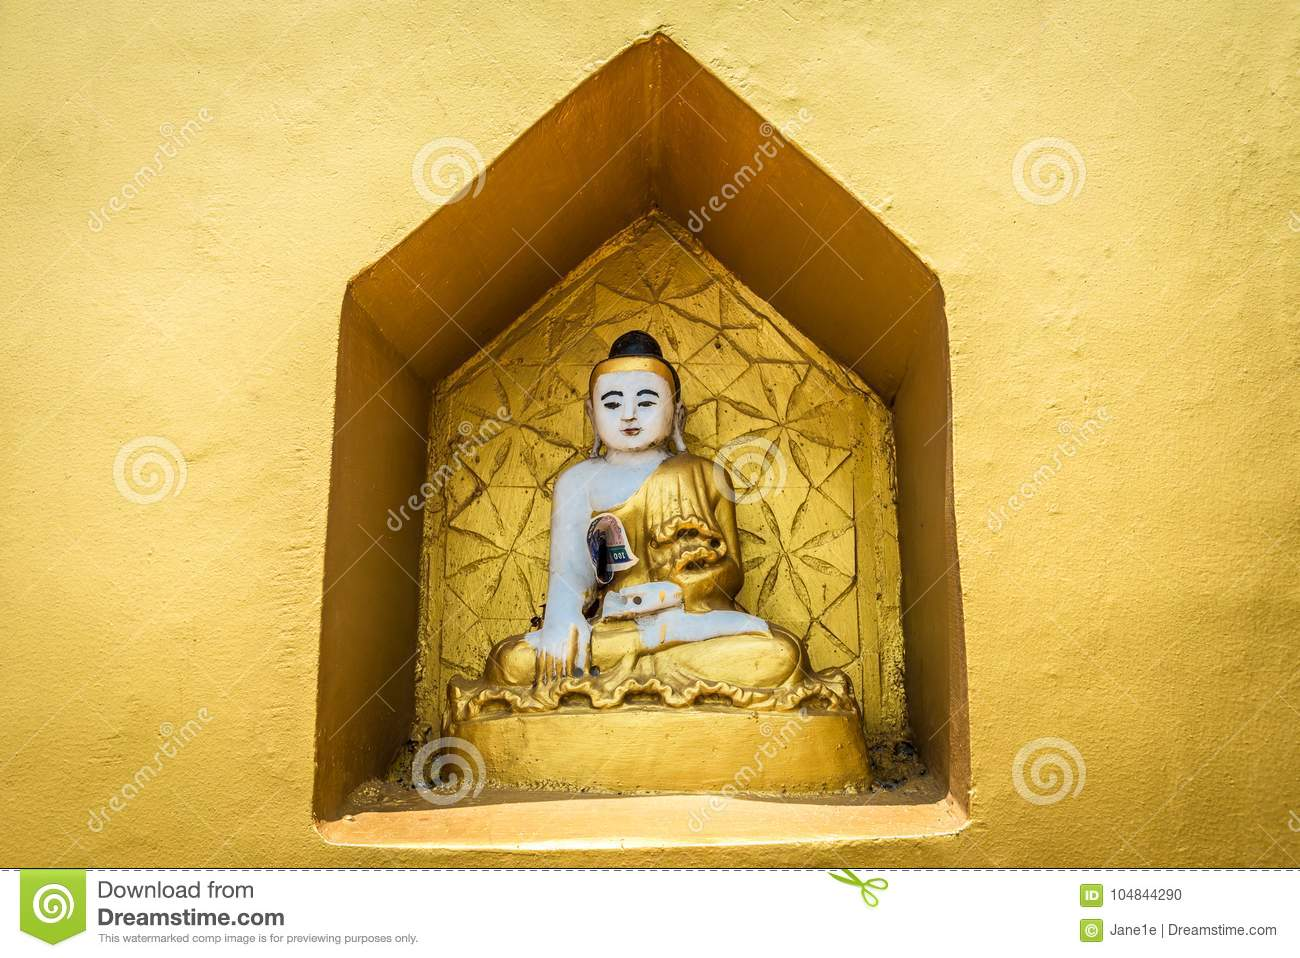 A small Buddhist altar with Buddha statues.